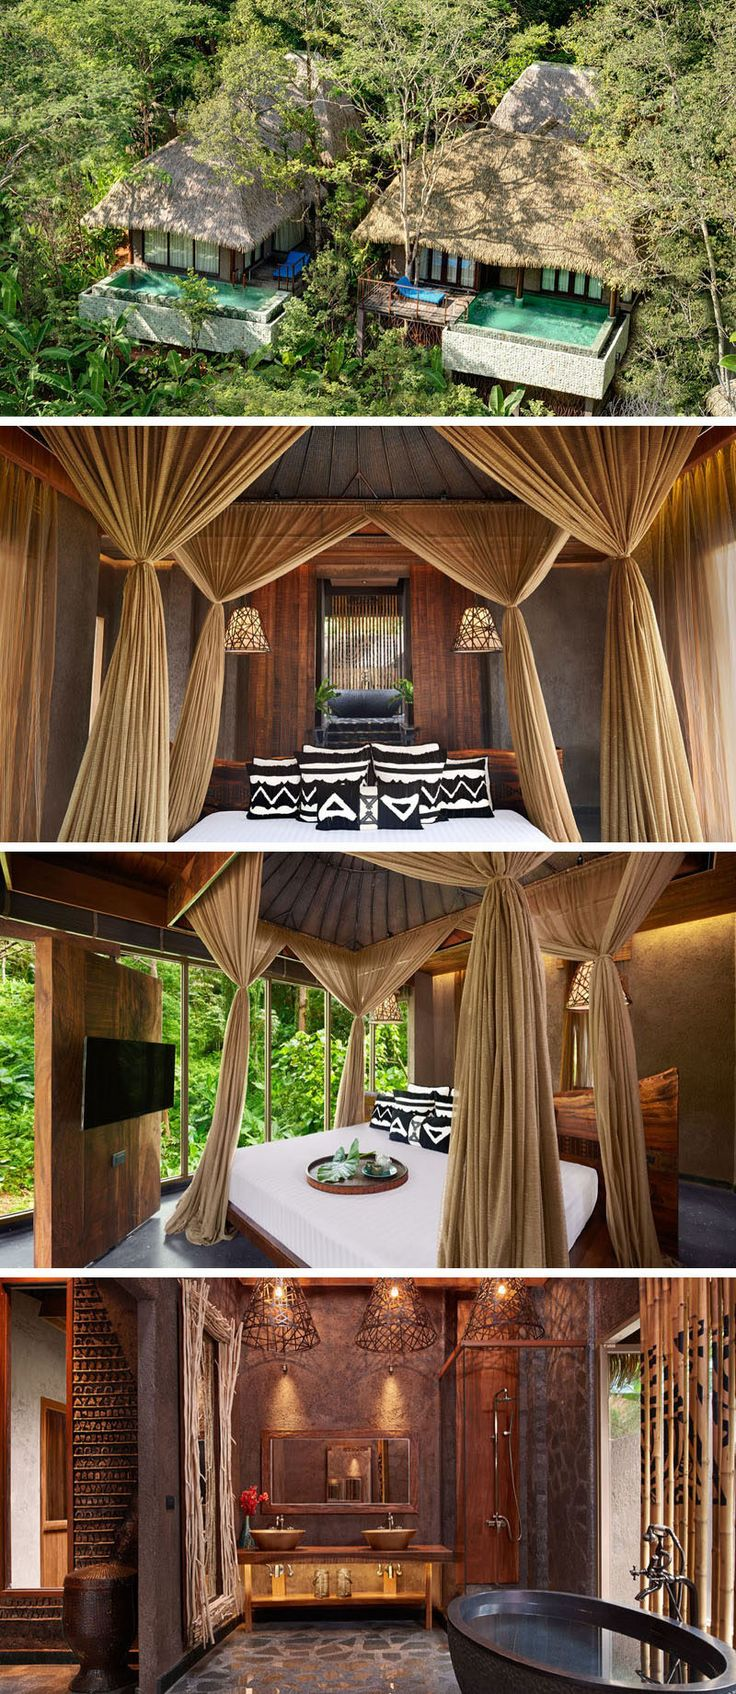 Travel Idea - The Clay Pool Cottages at Keemala (resort in Thailand) were inspired by the Pa-Ta-Pea clan who valued nature and the earth above all else. This was incorporated into the design by making the walls of these cottages from clay and dirt and including other natural materials, like wood and stone, into the interior as well.